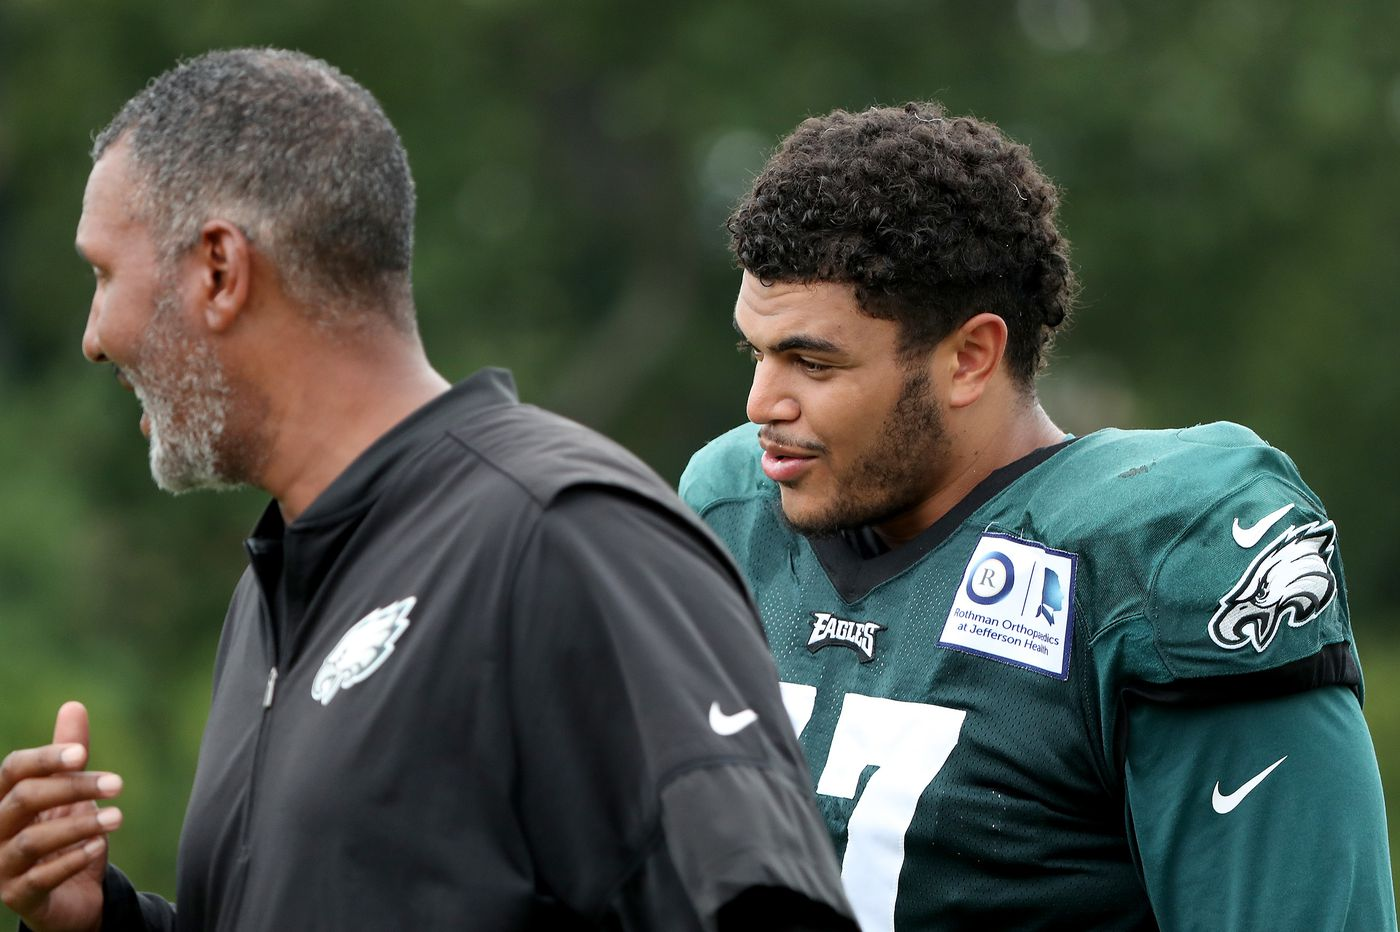 Eagles' Andre Dillard gets into scuffle second day in a row; Doug Pederson cites 'pressure to play'